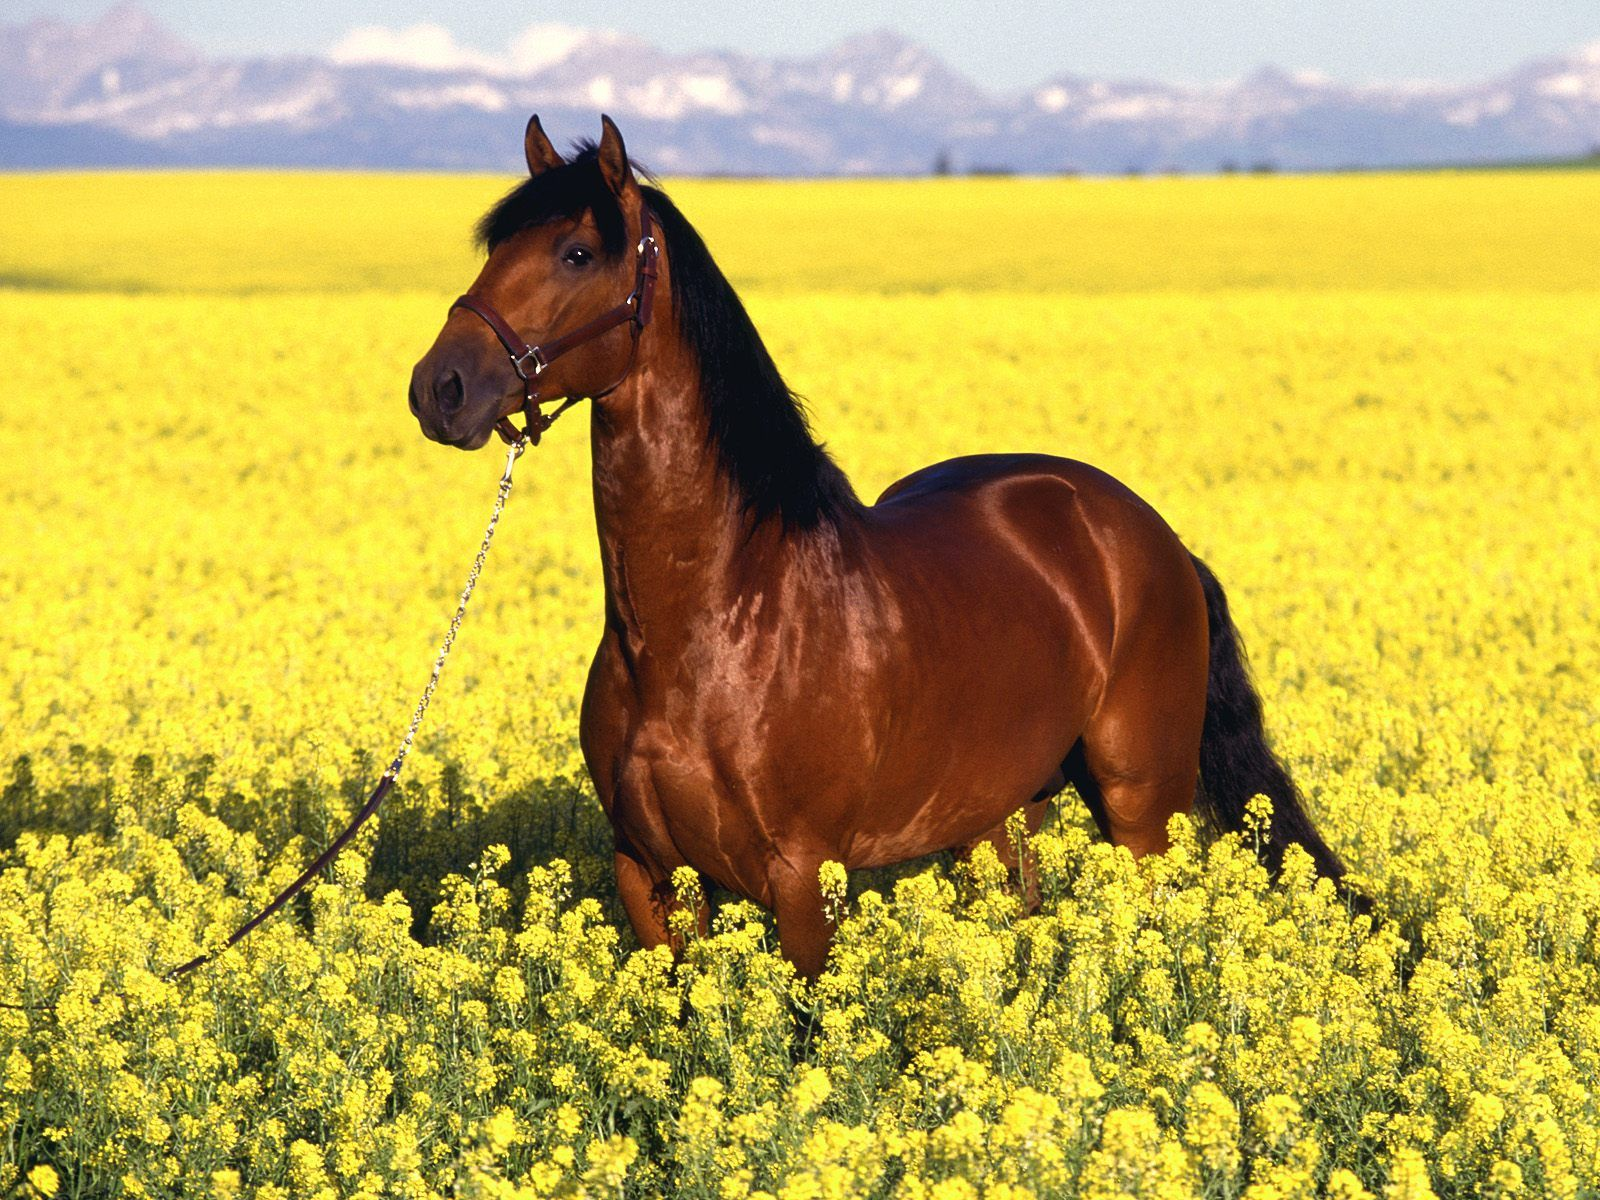 Download Wallpaper Horse Spring - 0448329fd8bb3b9a765d3ffa3cb9a68c  Perfect Image Reference_356698.jpg